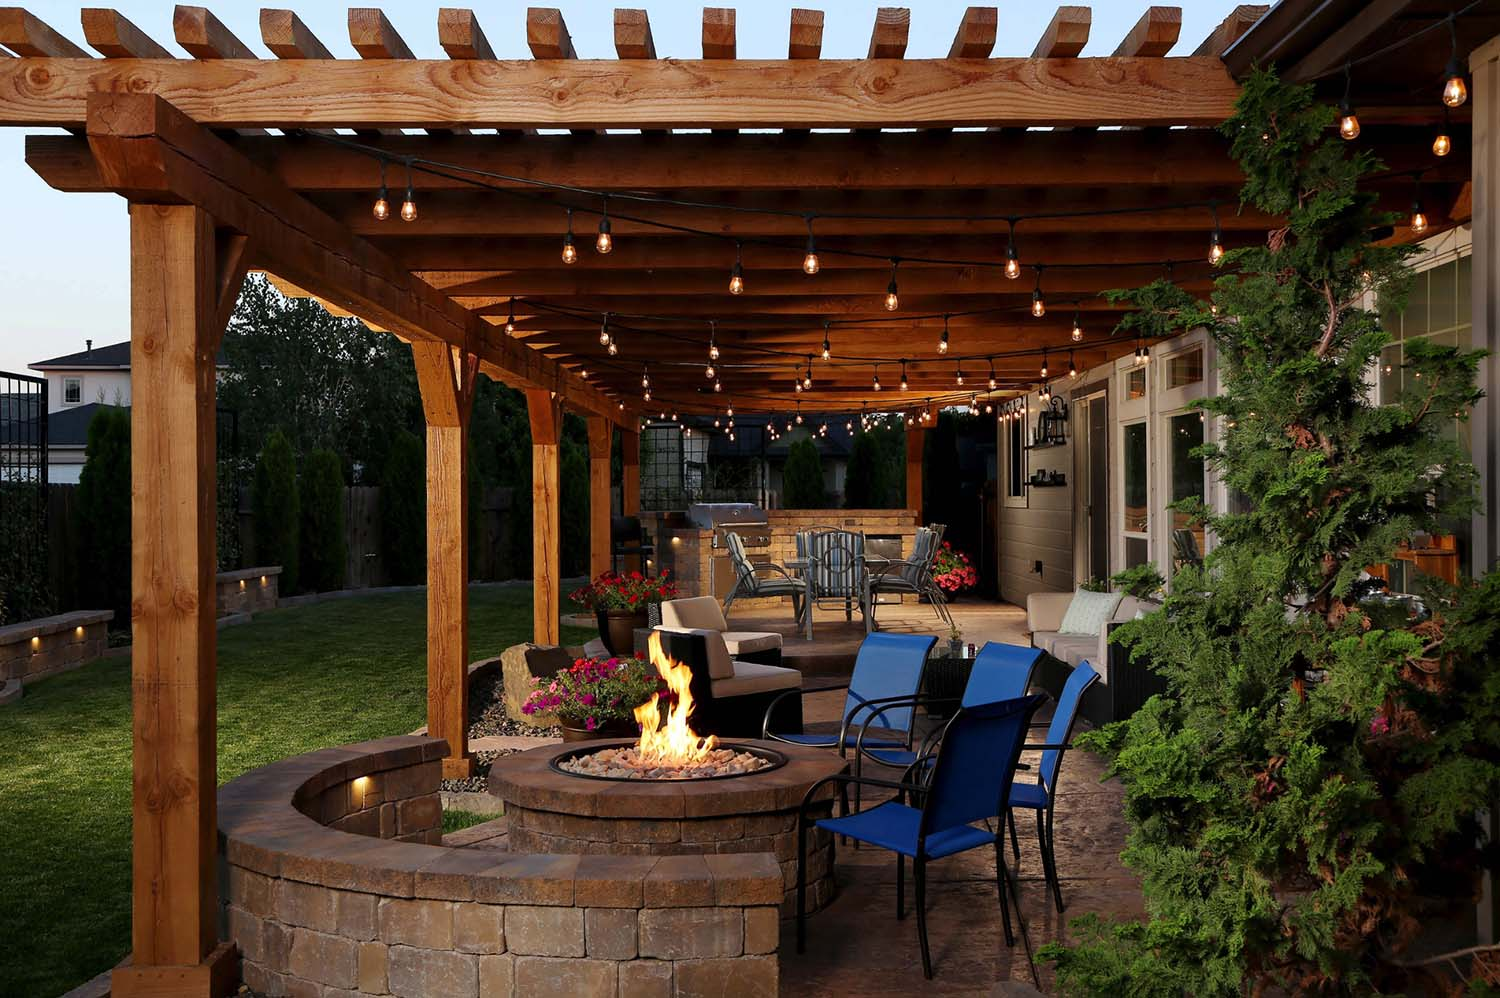 You Should Install A Pergola In Your Outdoor Area! Know Why?